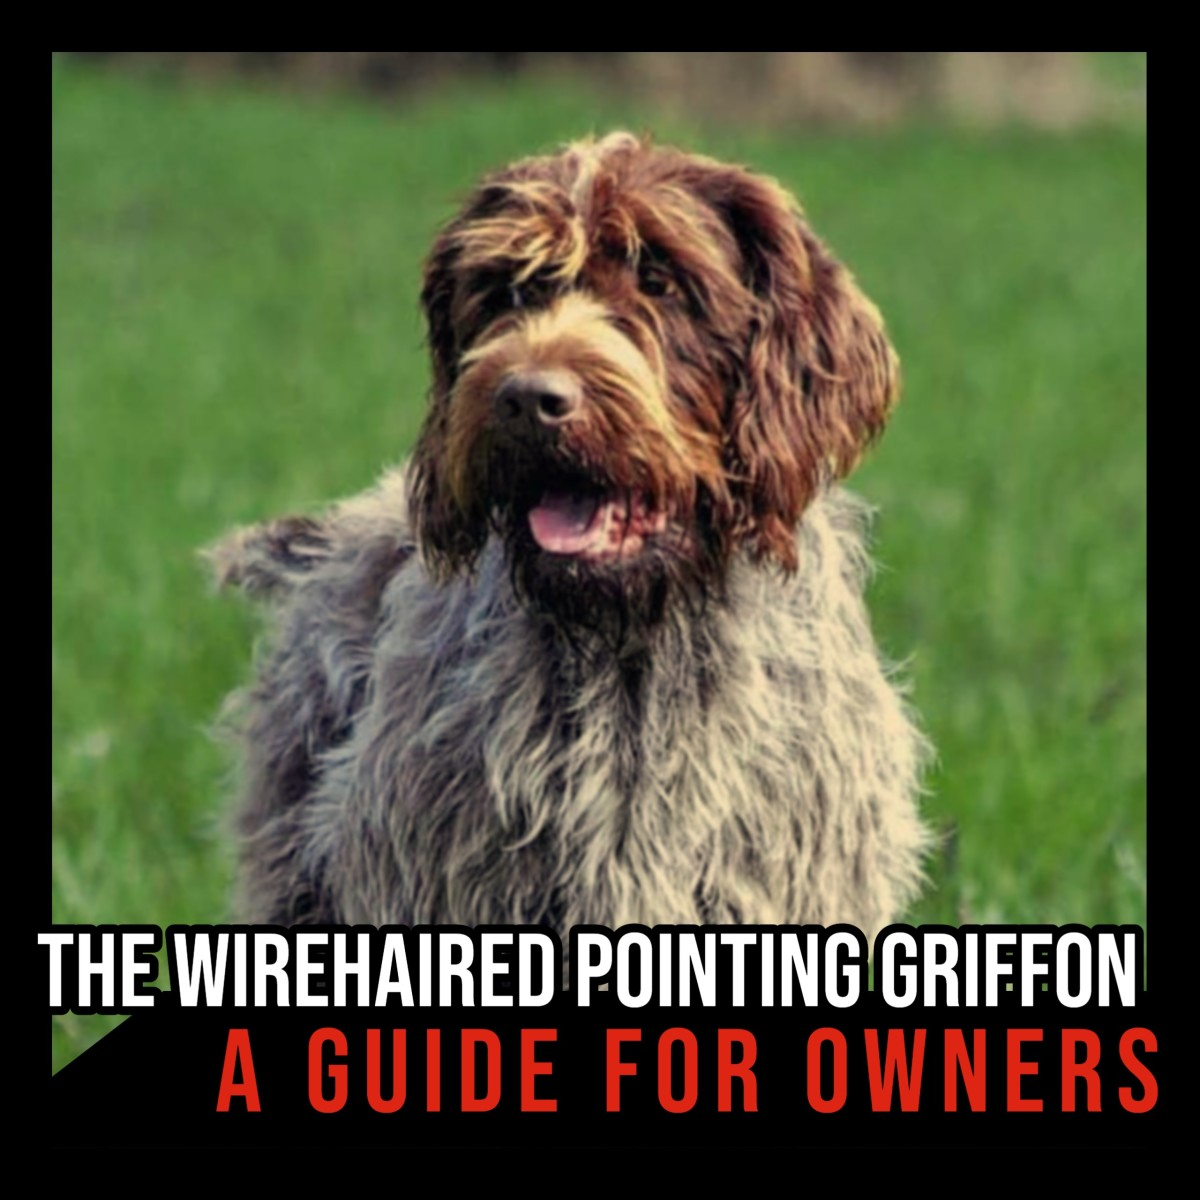 The Wirehaired Pointing Griffon: A Guide for Owners